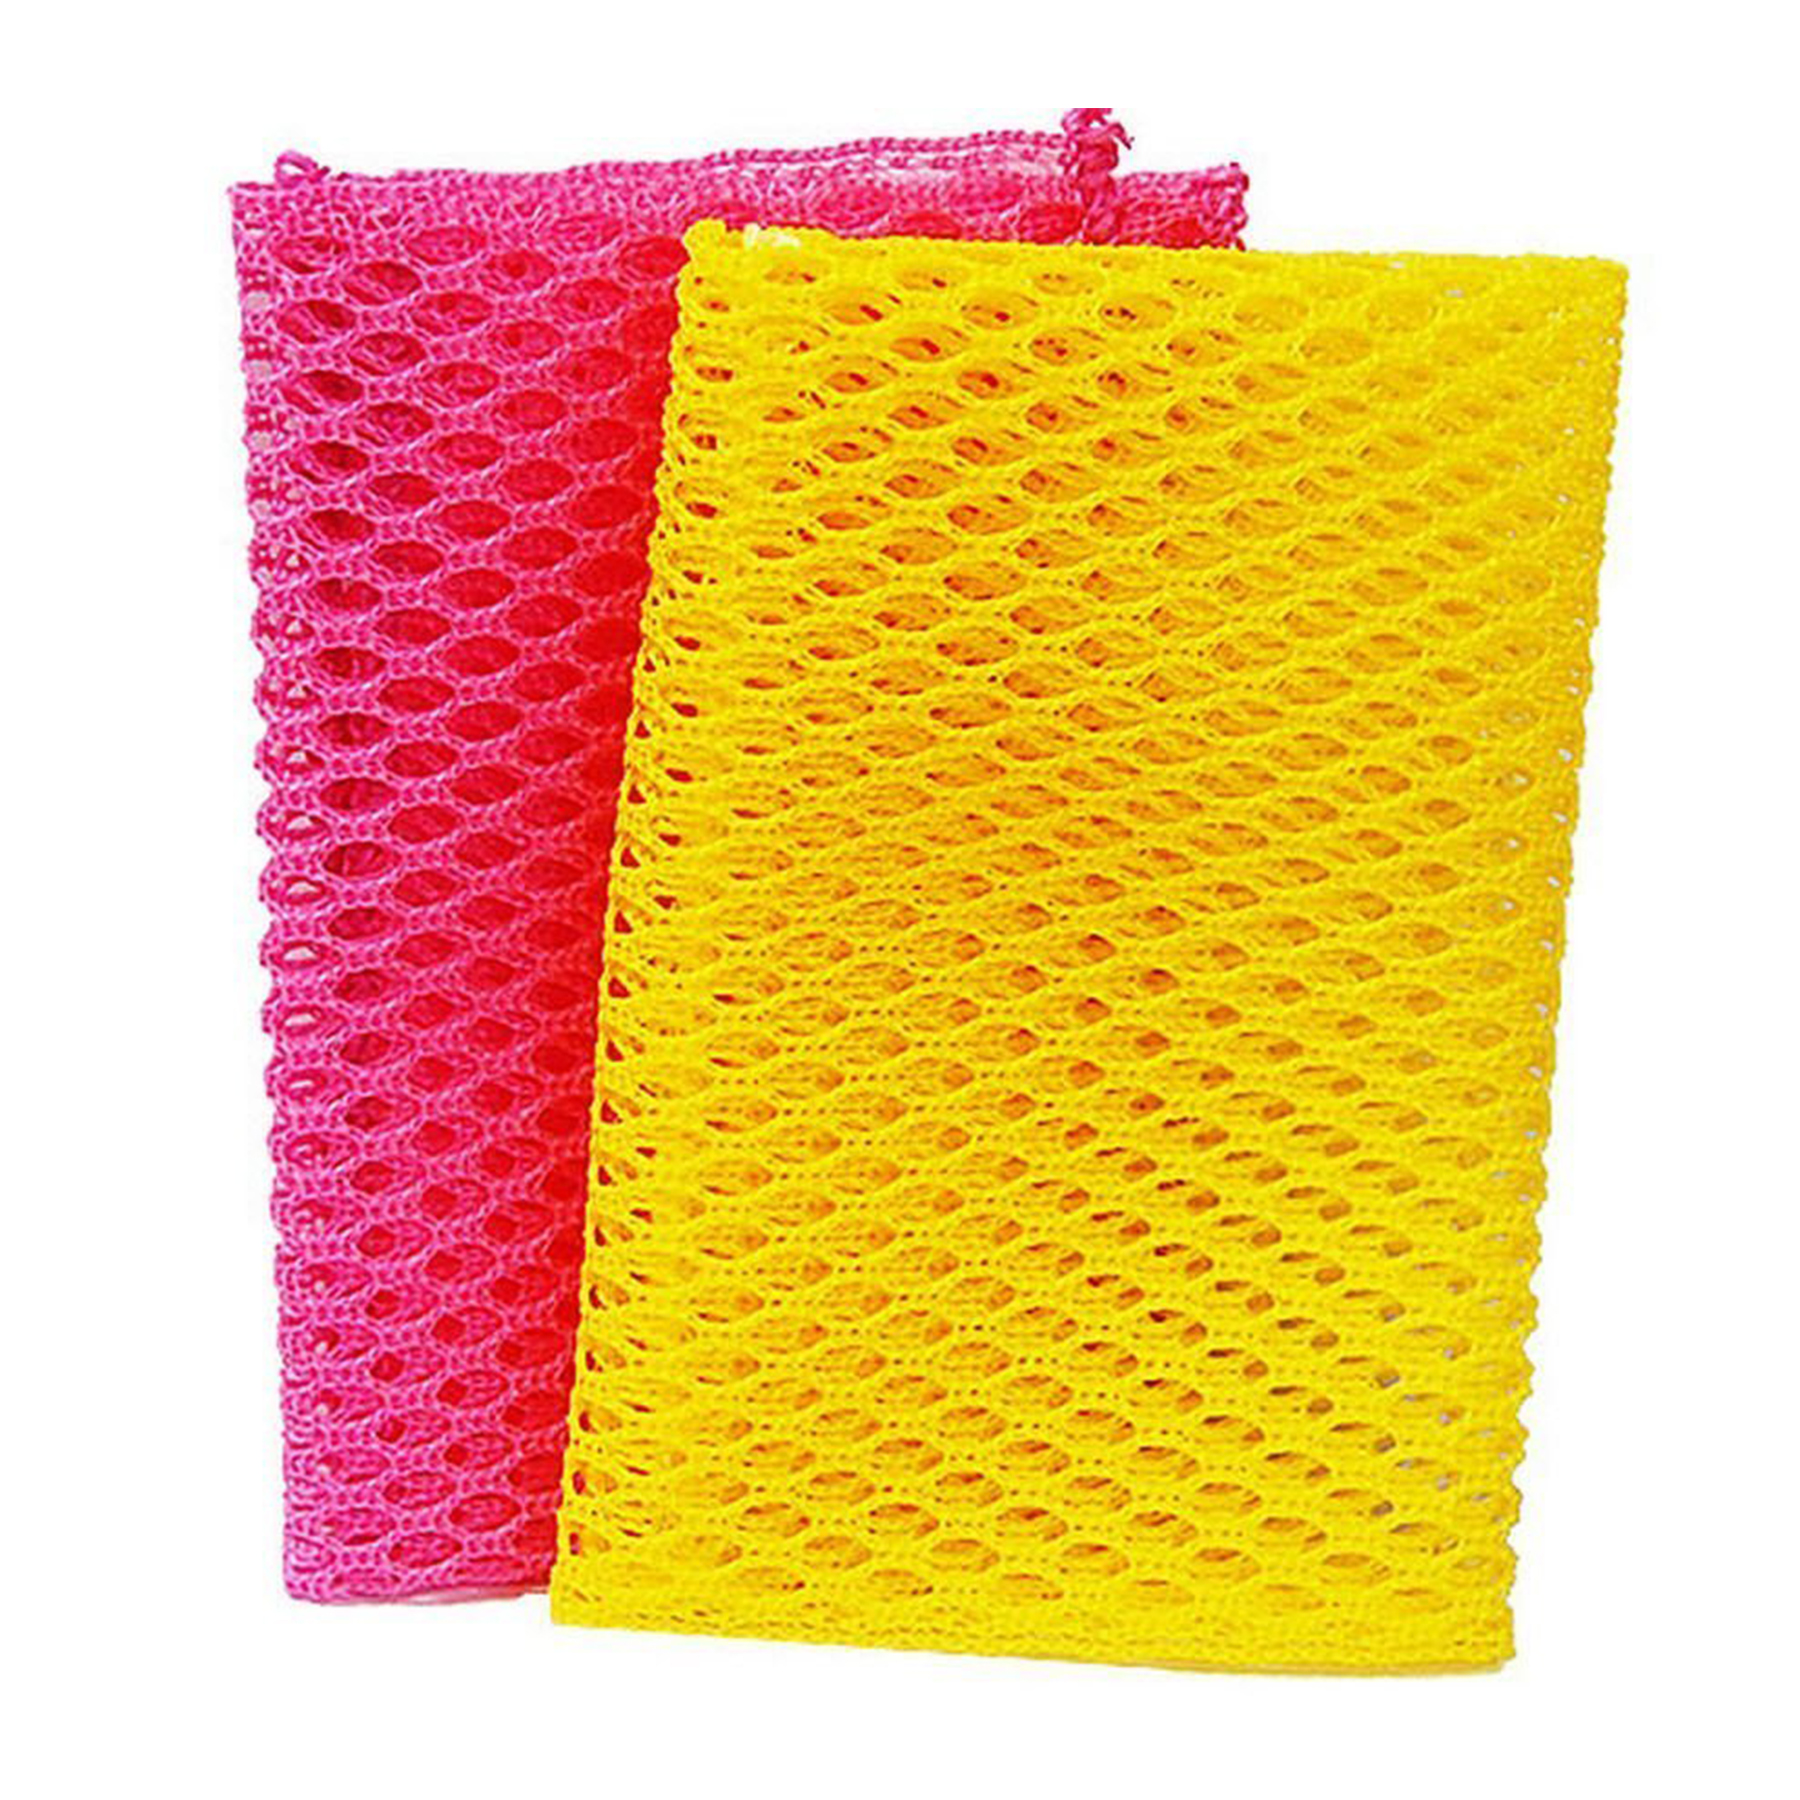 Net Scrubber Sponge in yellow and pink